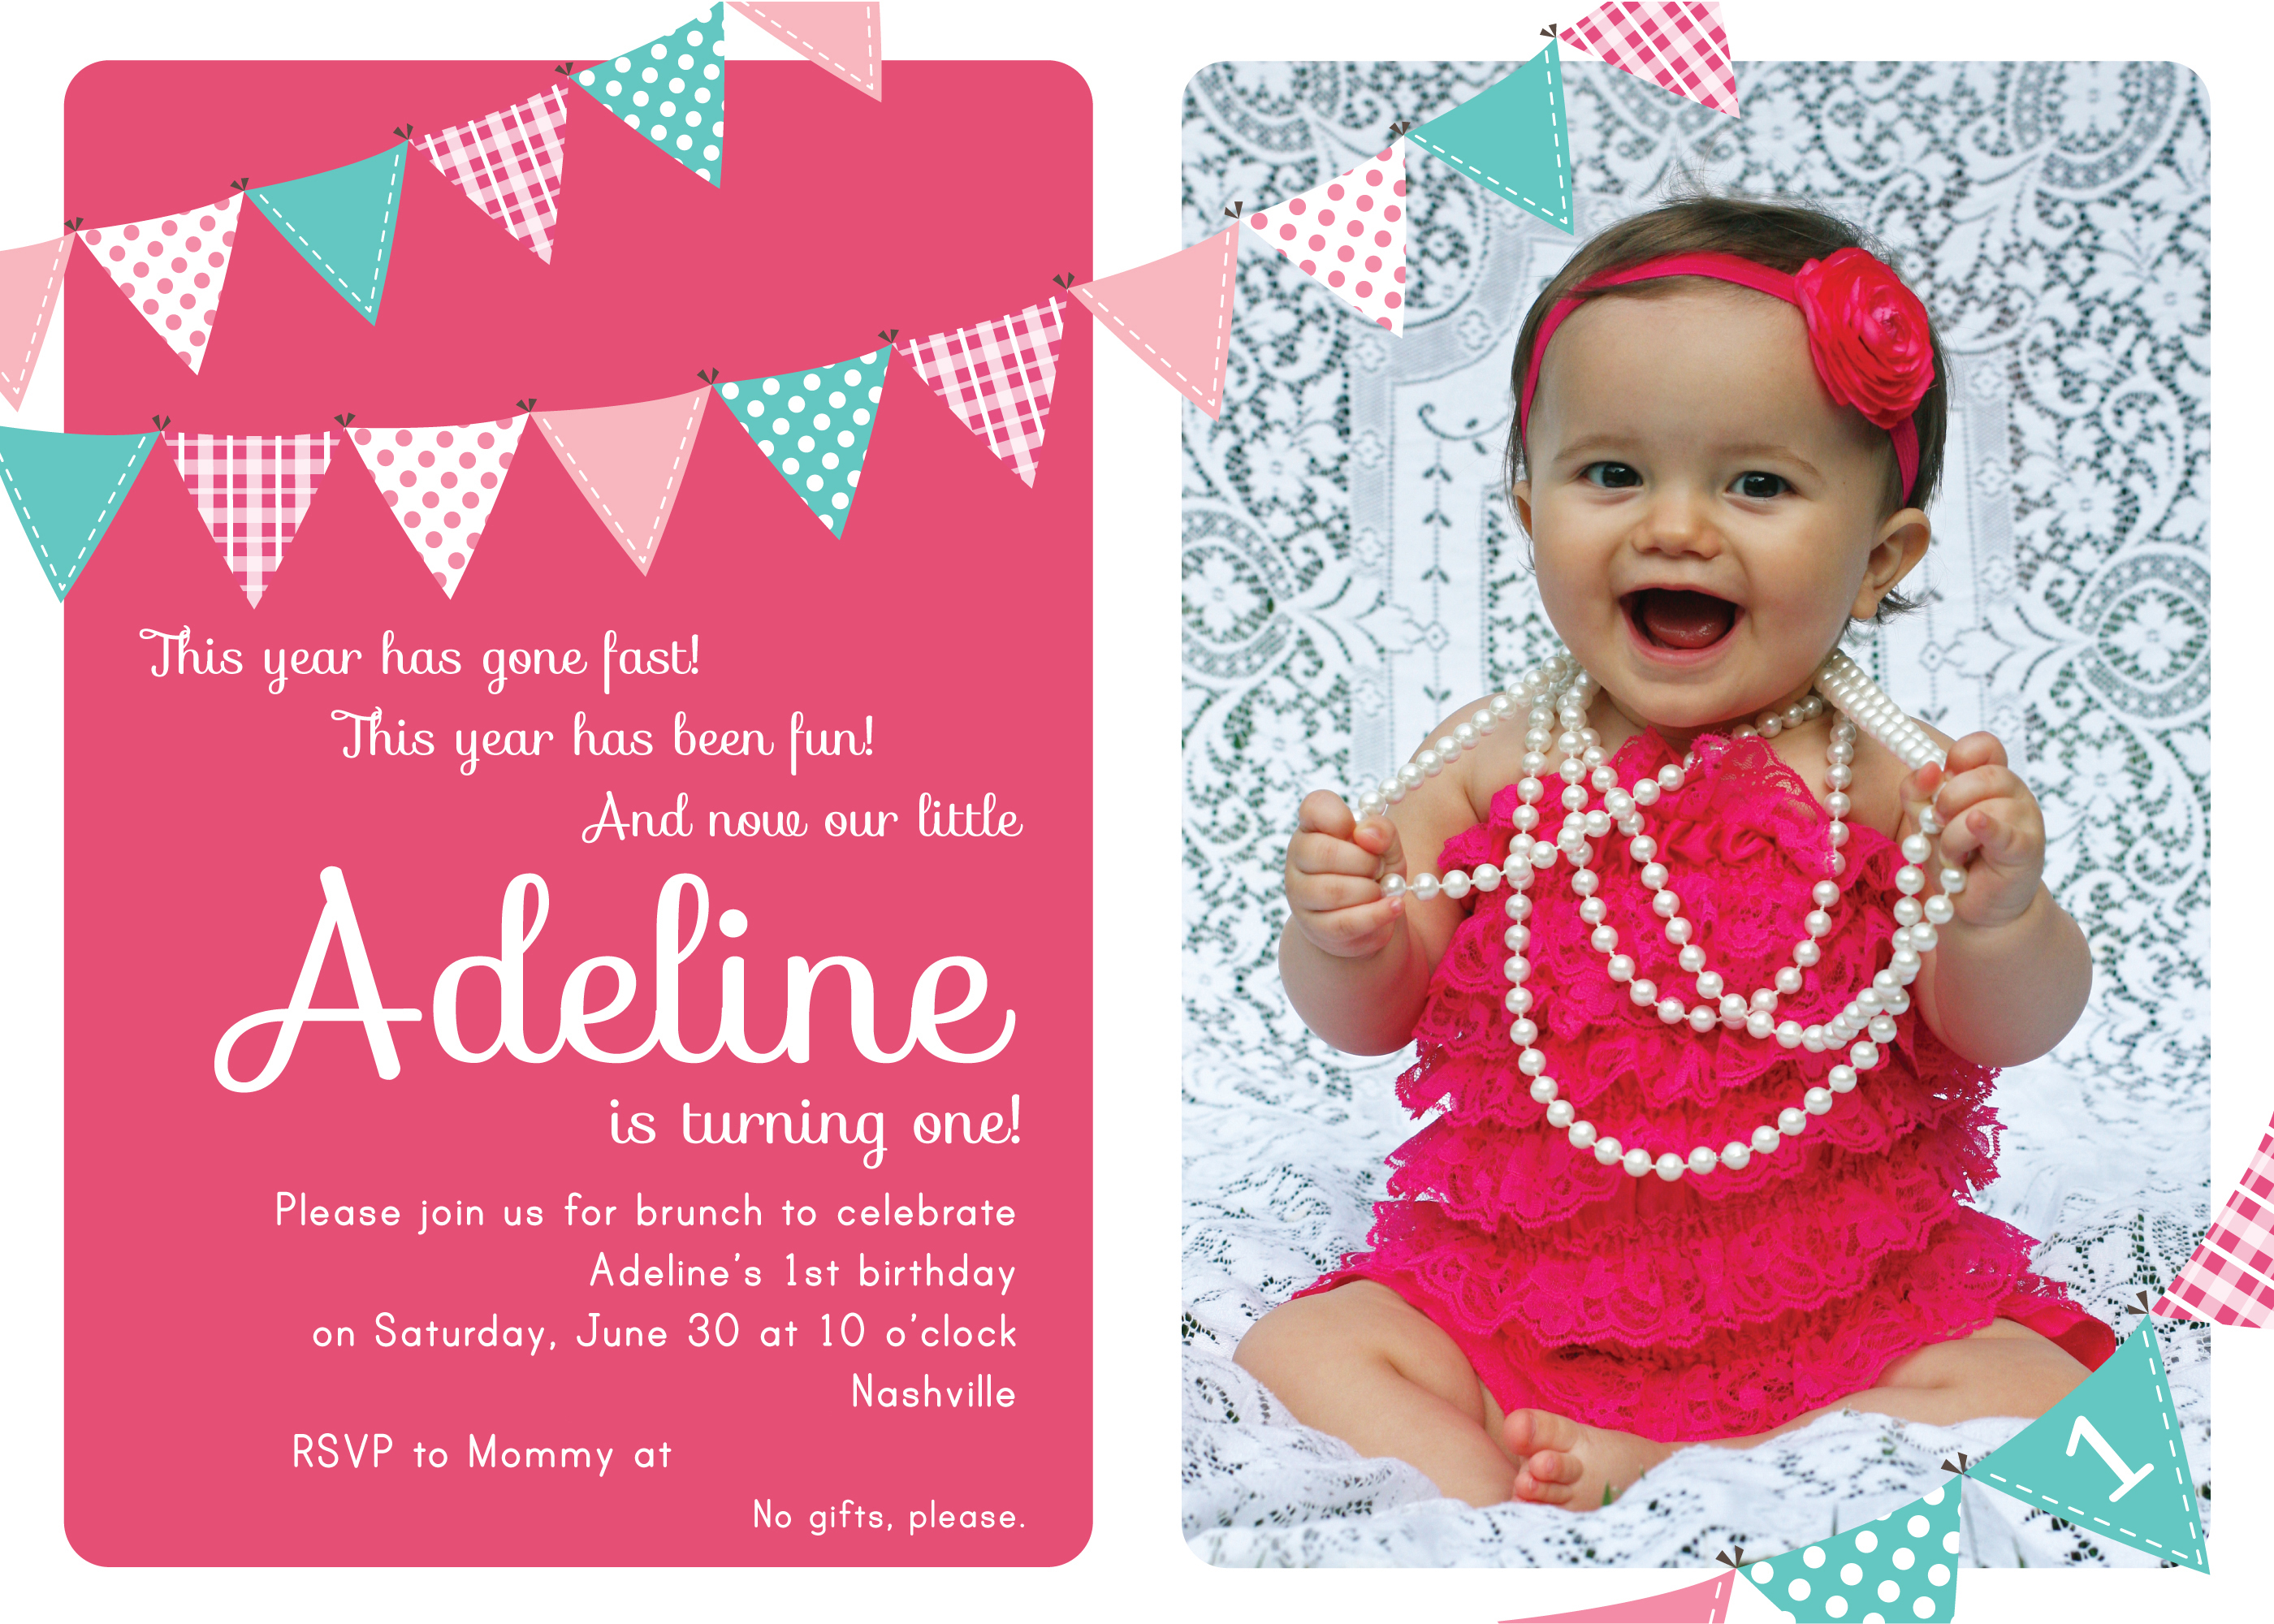 best birthday invitation card design ; Cheap-1St-Birthday-Invitations-combined-with-your-creativity-will-make-this-looks-awesome-1